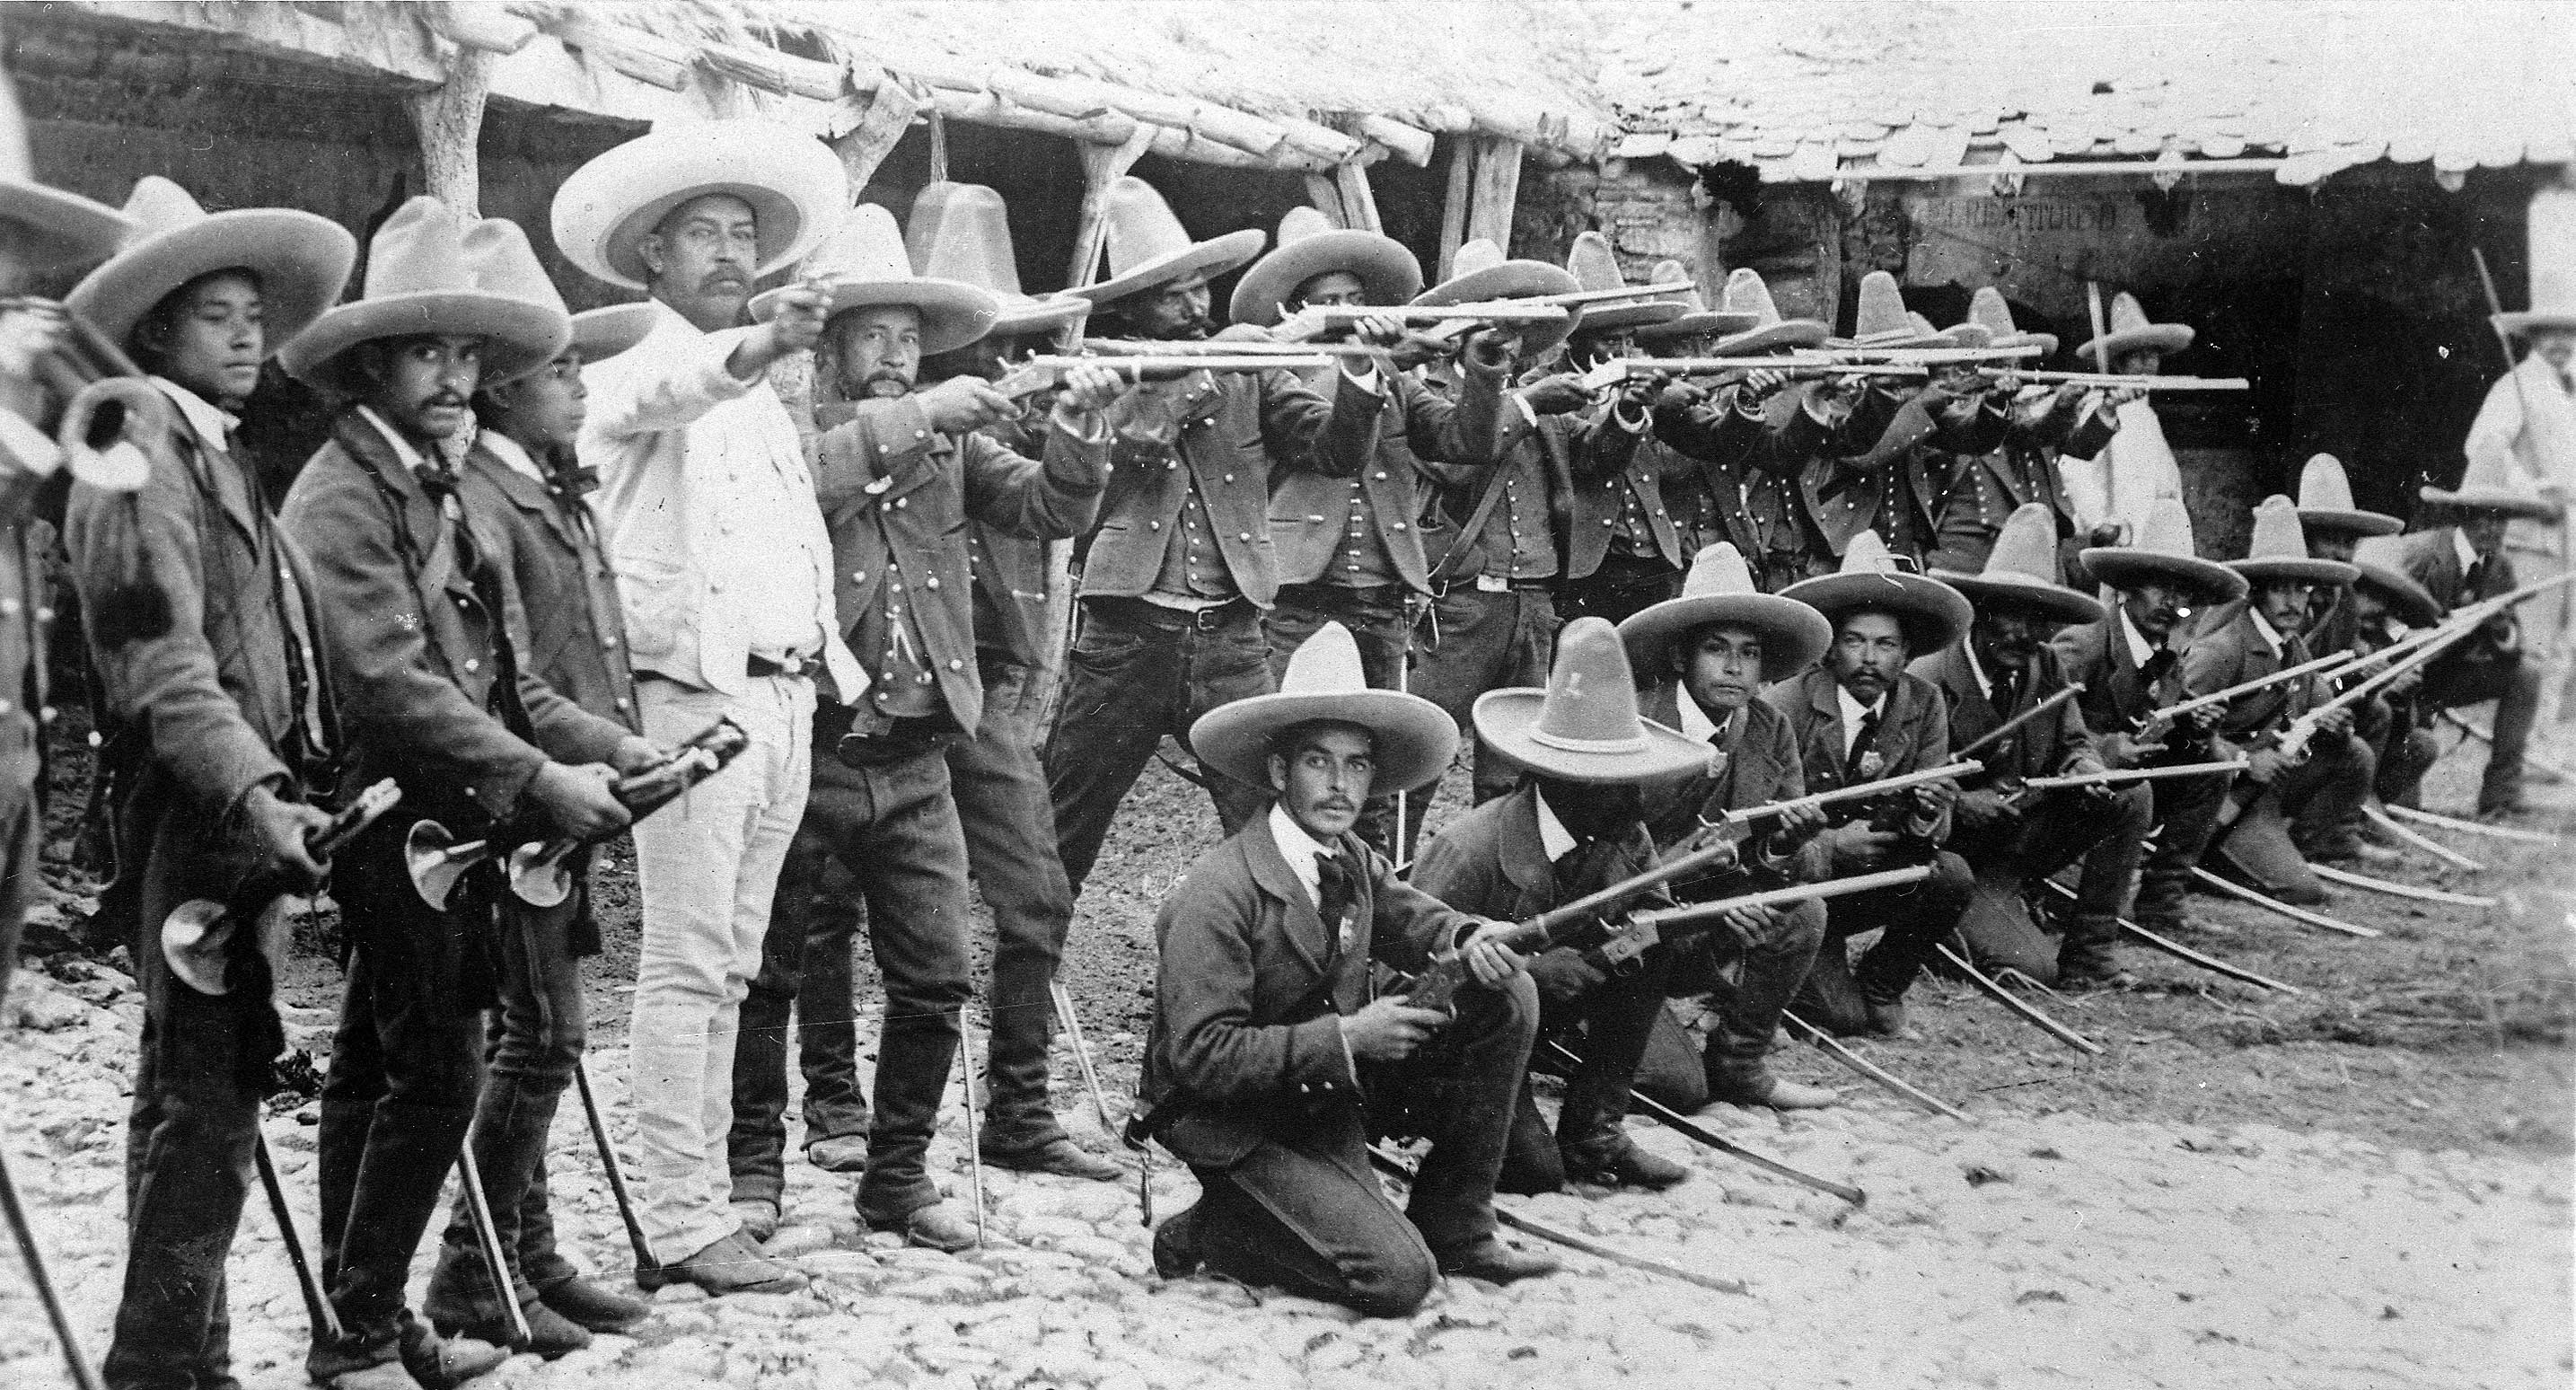 Early Mexican Army Rifles and Cartridges